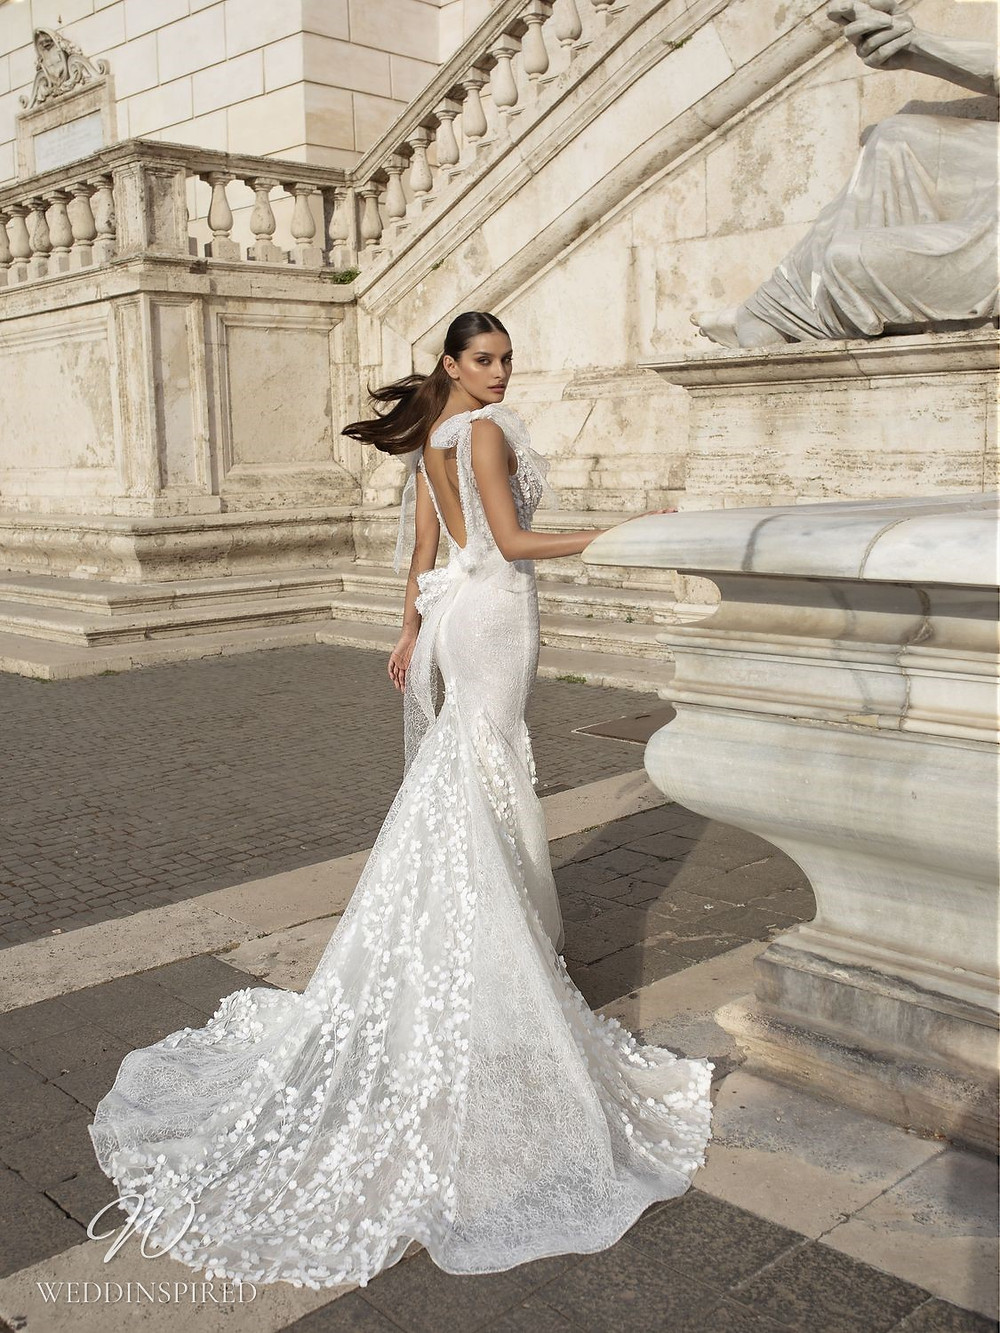 A Pinella Passaro lace mermaid wedding dress with a low back and bows